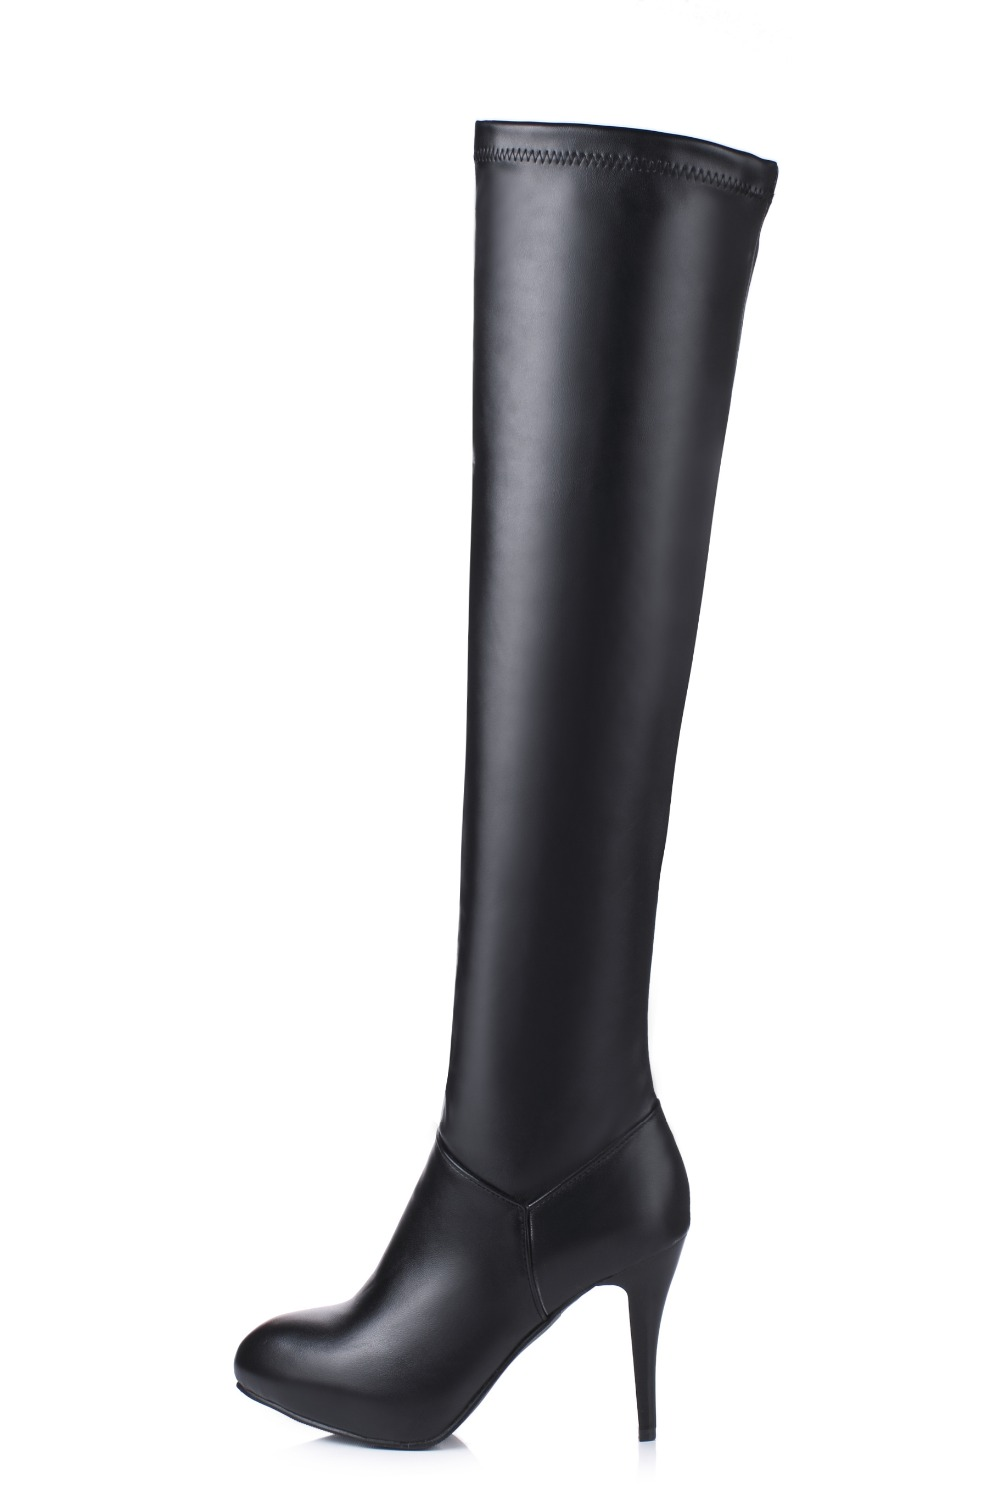 New Sexy Women Over the Knee Boots Nice Pointed Toe Thin Heels Winter Boots Elegant Brown White Shoes Woman Plus Size 3.5-13 nasipal 2017 new women pu sexy fashion over the knee boots sexy thin high heel boots platform woman shoes big size 34 43 g804